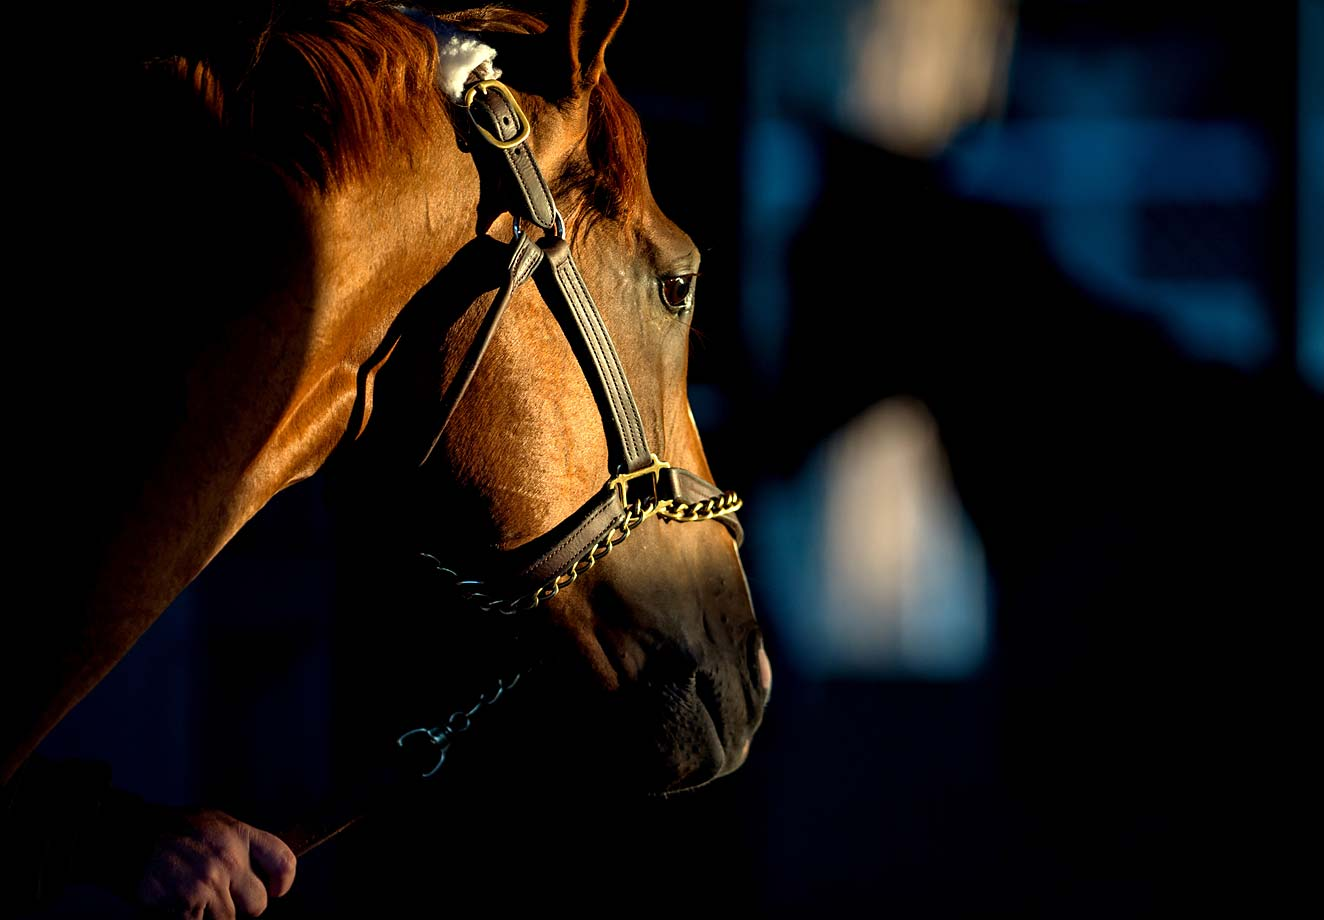 California Chrome in the barn area the morning after winning the Kentucky Derby.